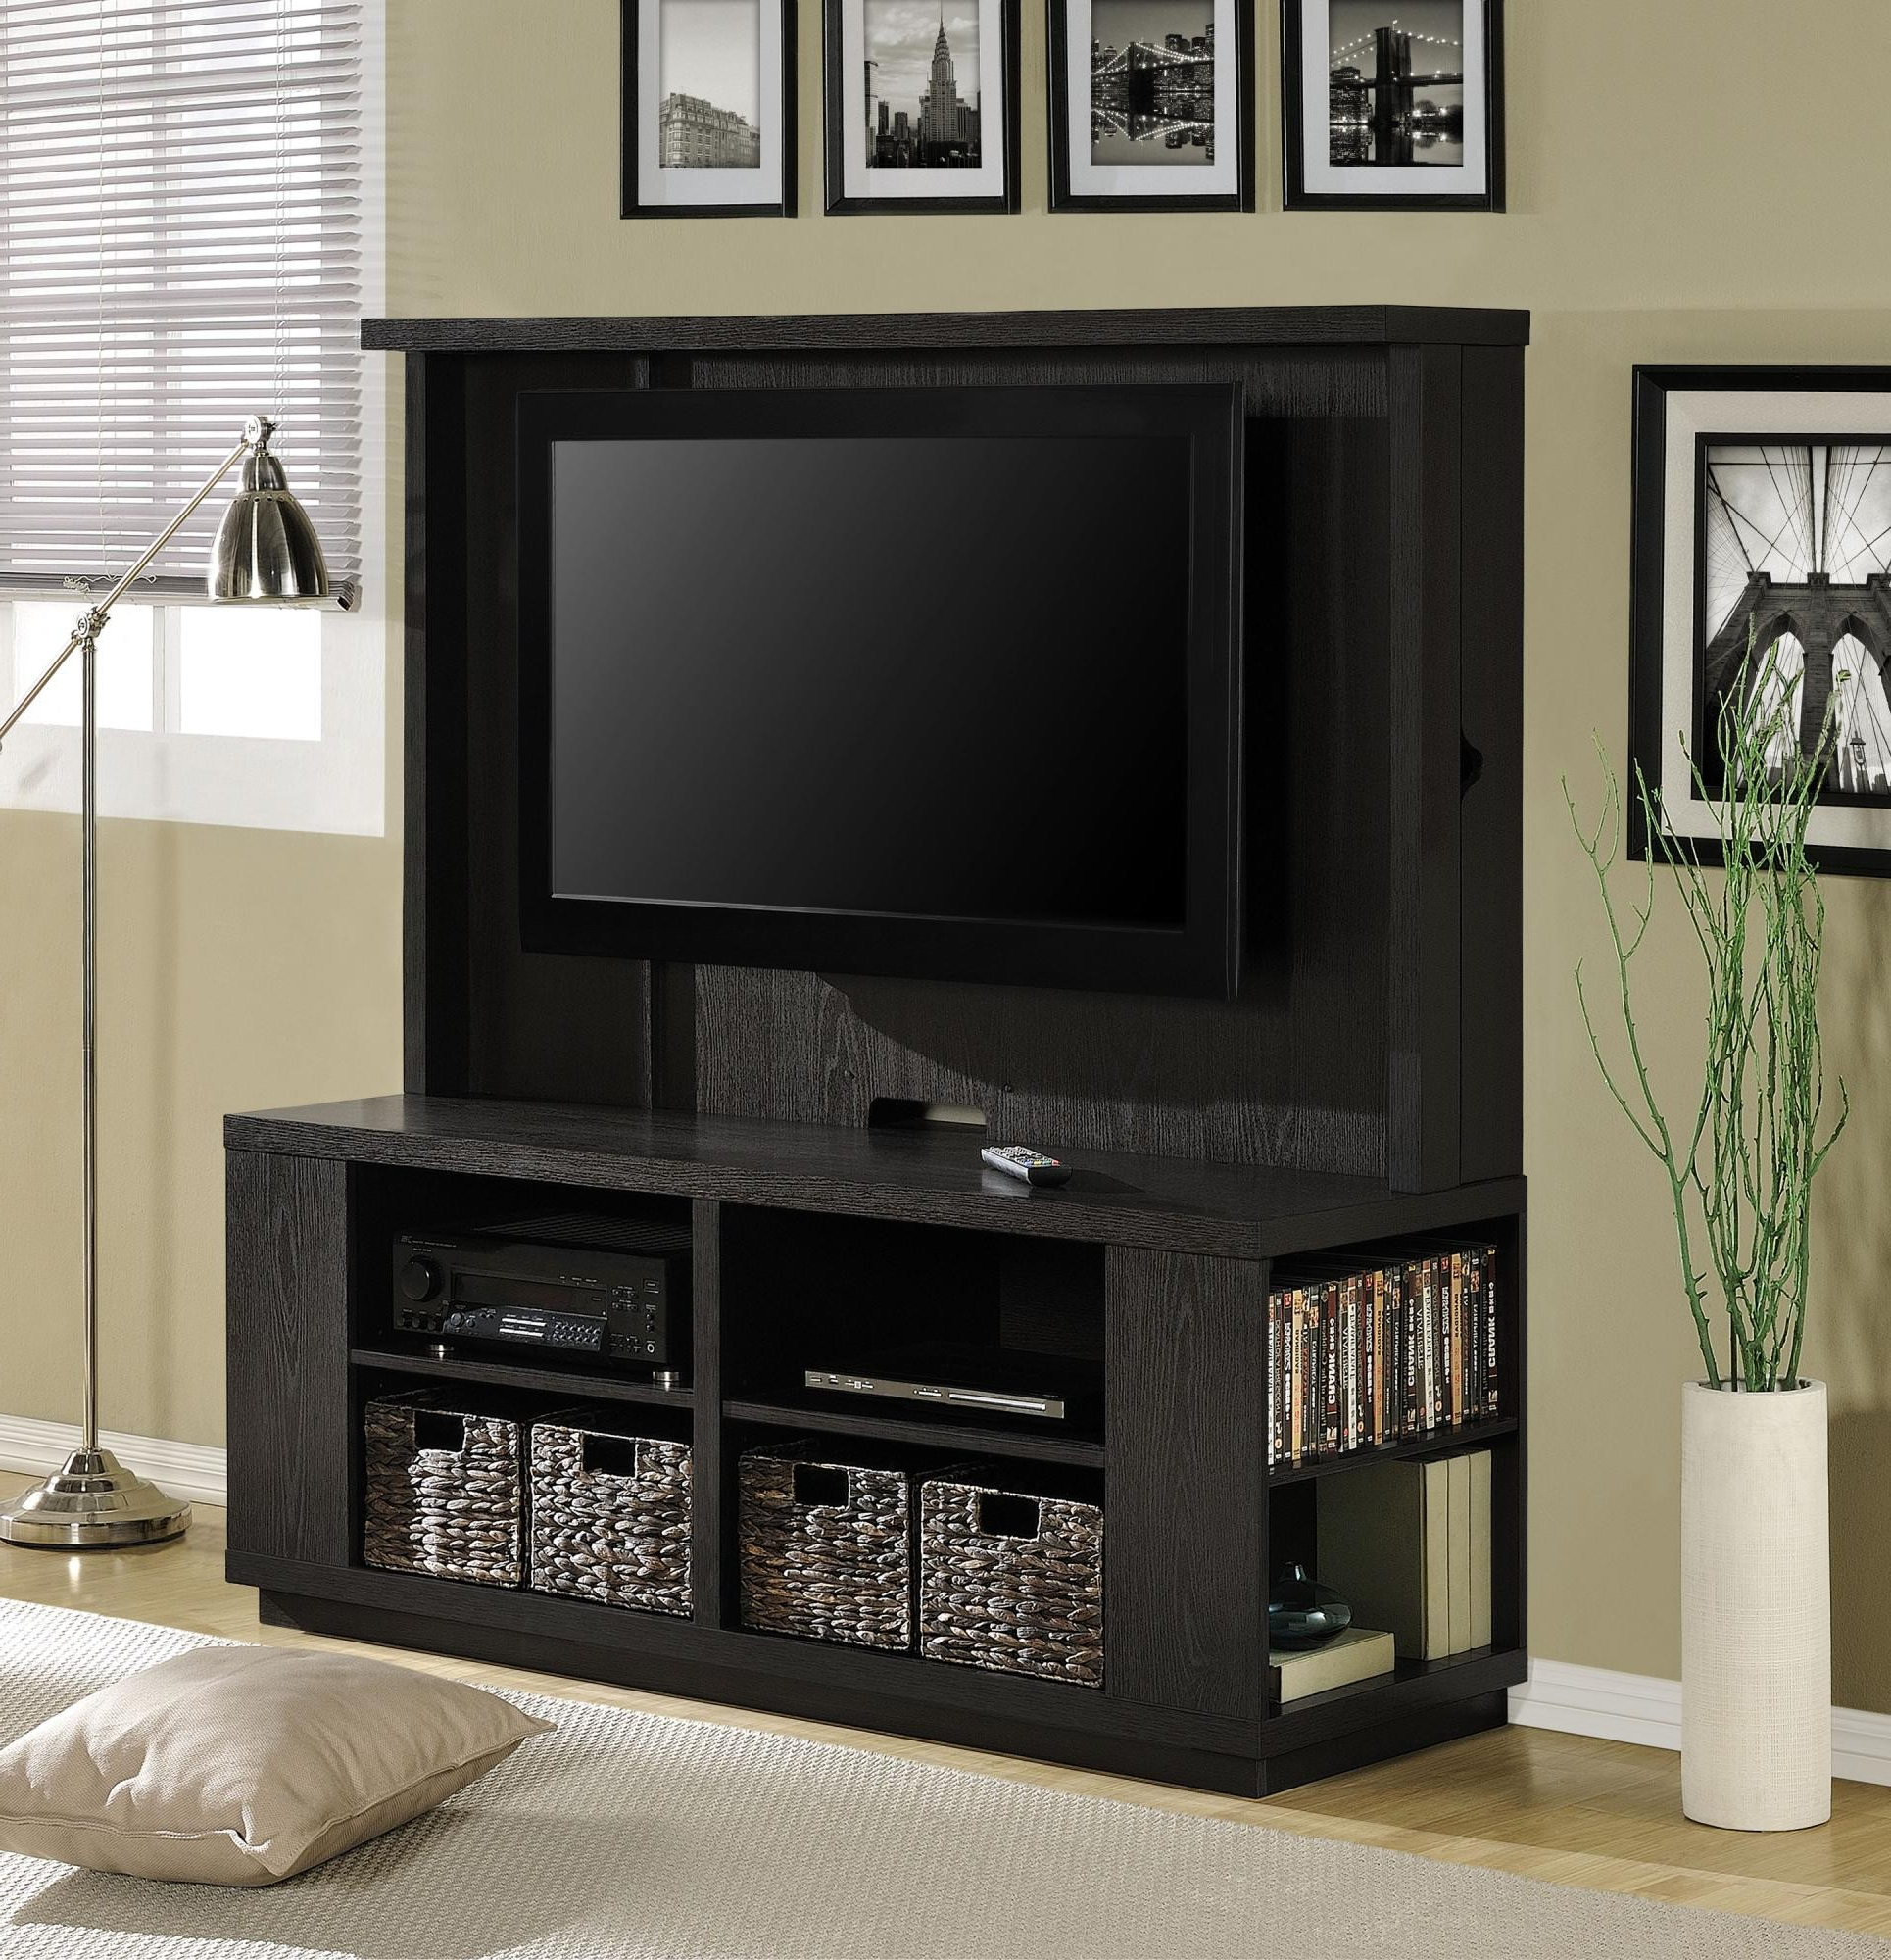 Recent Tv Stands With Baskets Throughout Small Black Wall Mounted Tv Stand With Storage Shelves Plus Woven (Gallery 1 of 20)